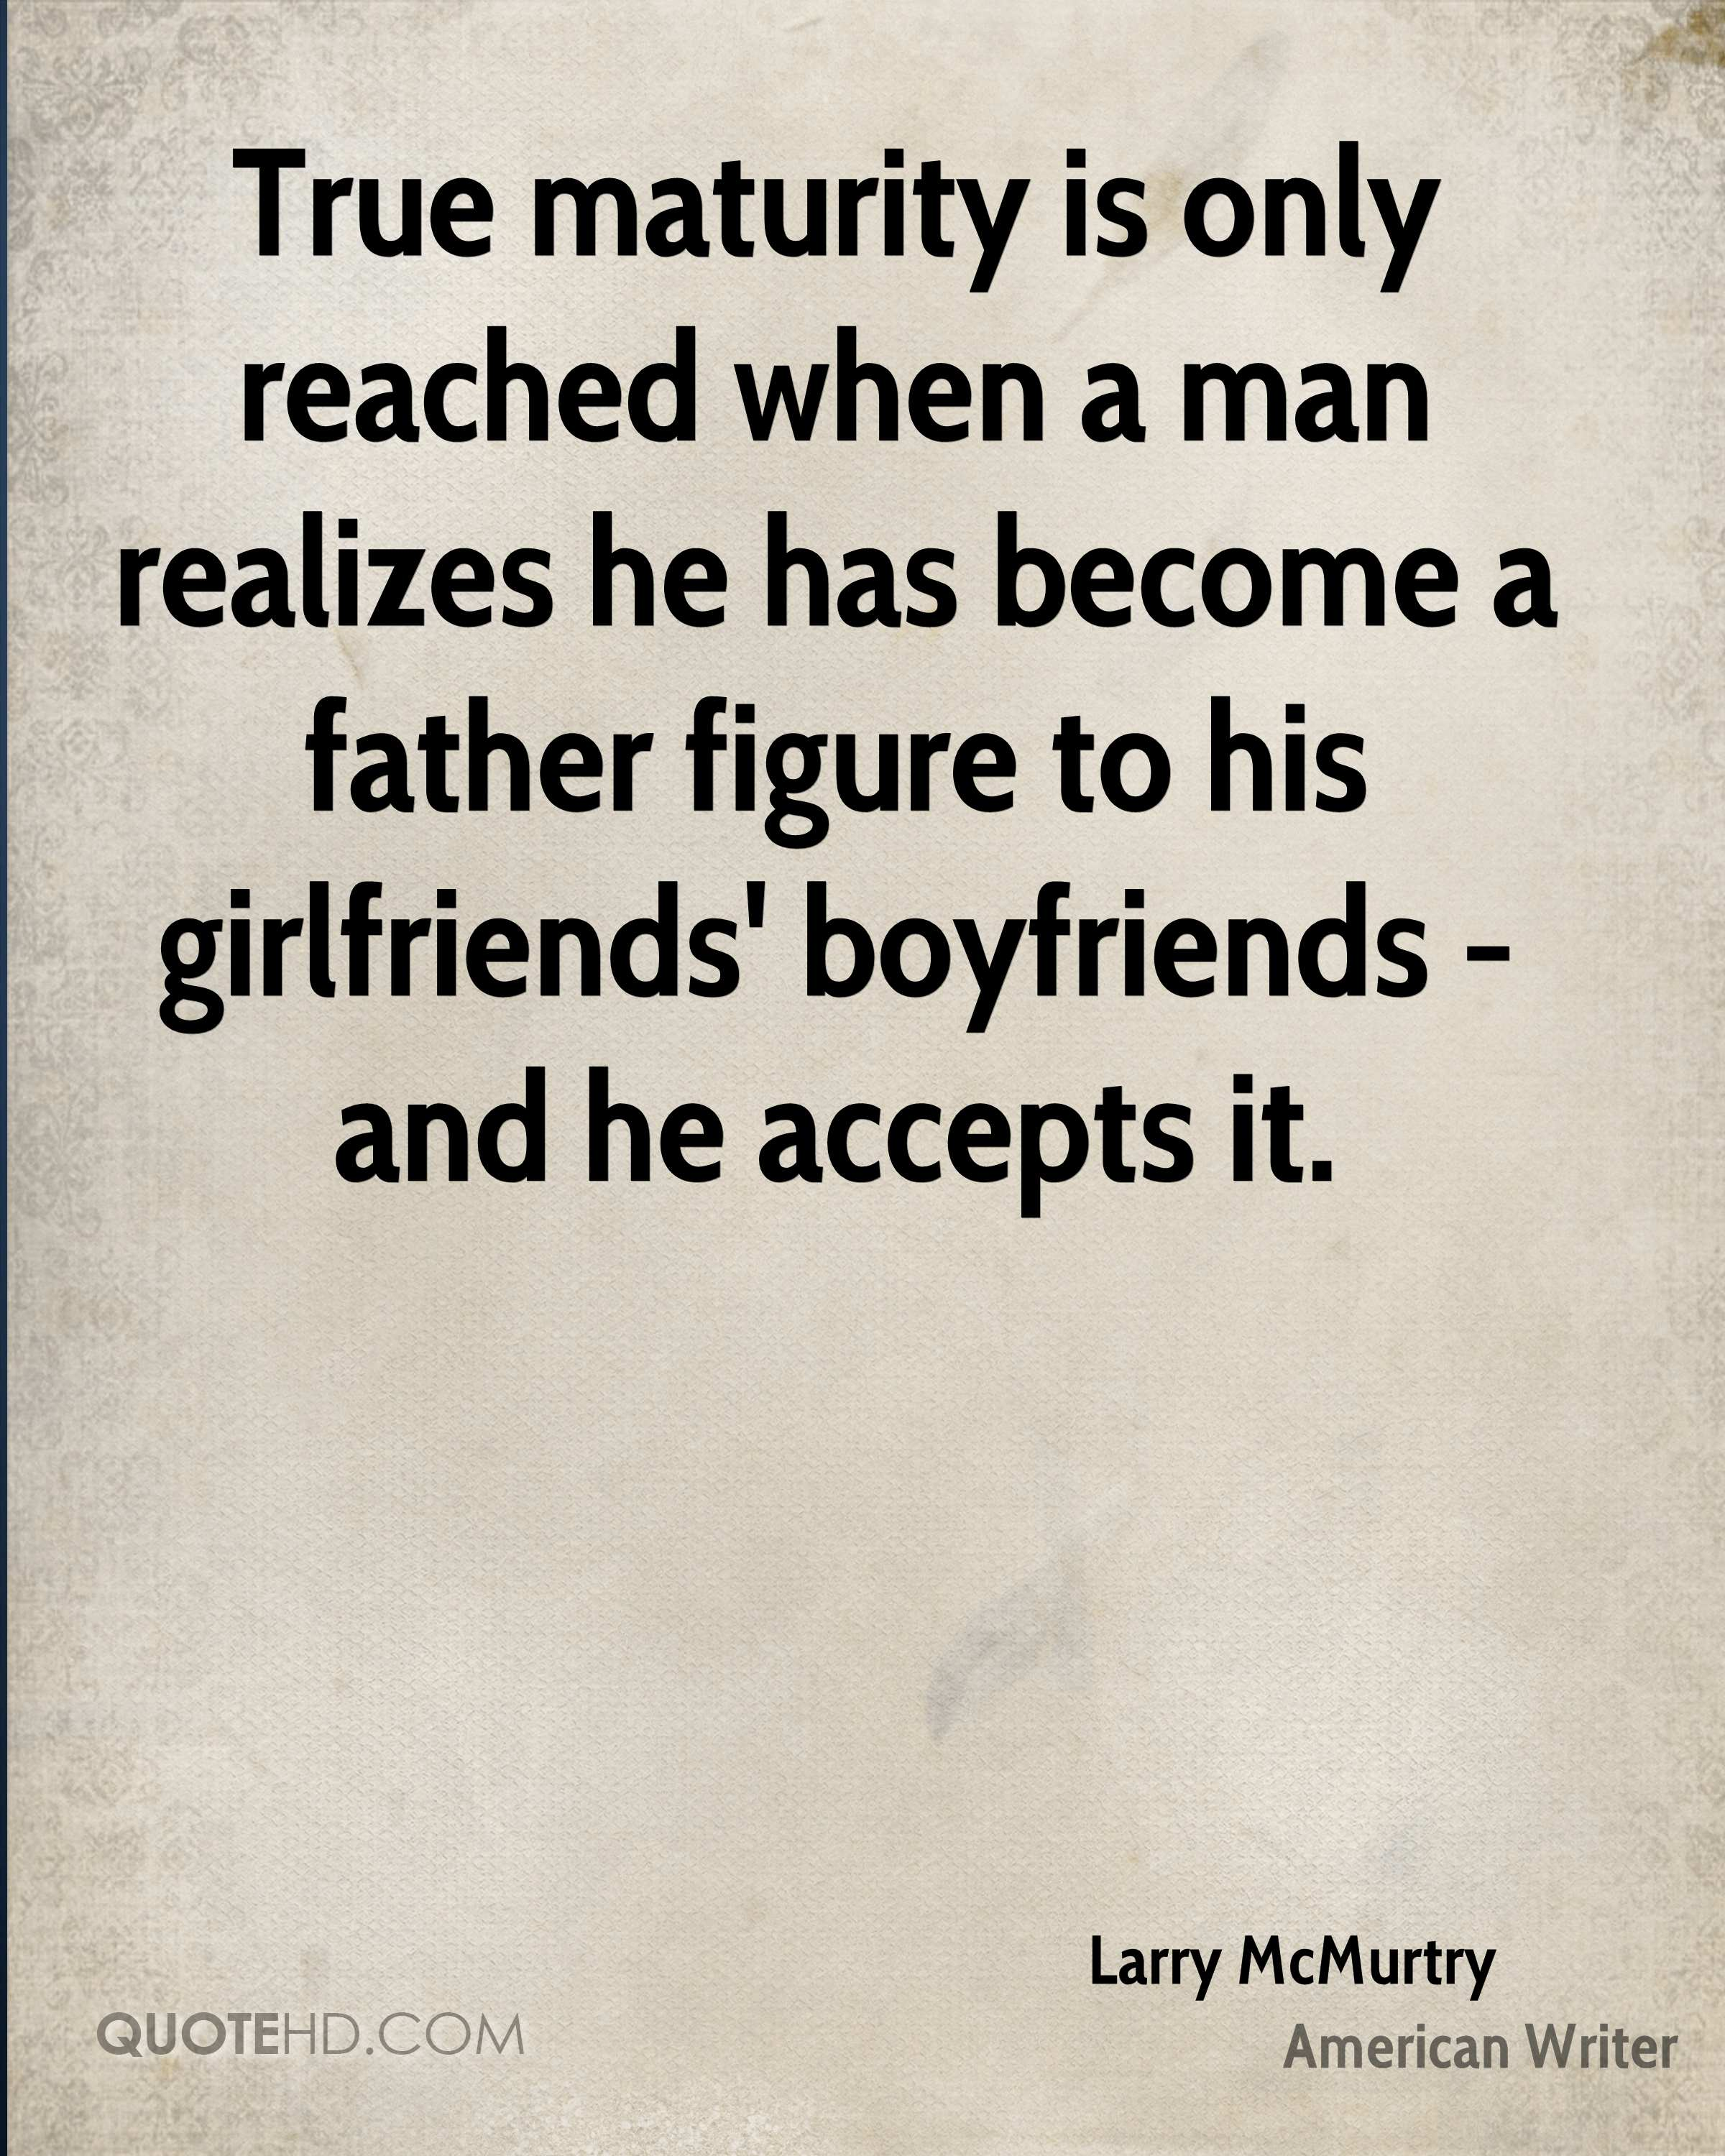 True maturity is only reached when a man realizes he has become a father figure to his girlfriends' boyfriends - and he accepts it.